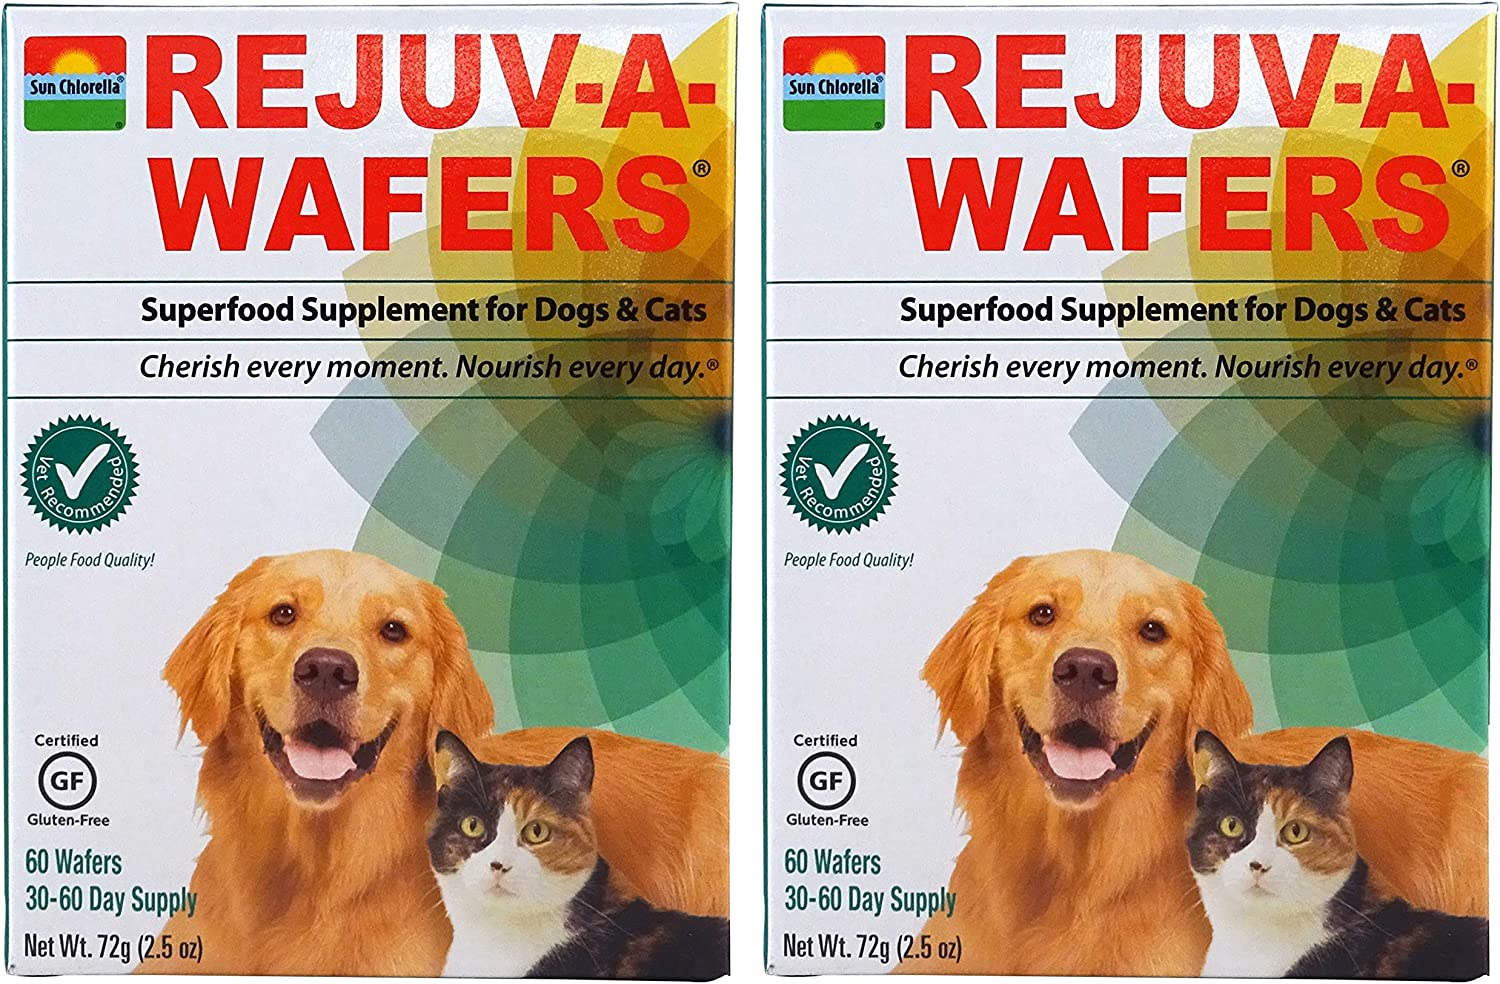 Sun Chlorella- Rejuv-A-Wafers- Chlorella Eleuthero Superfood Supplement for Dogs and Cats 60 Wafers